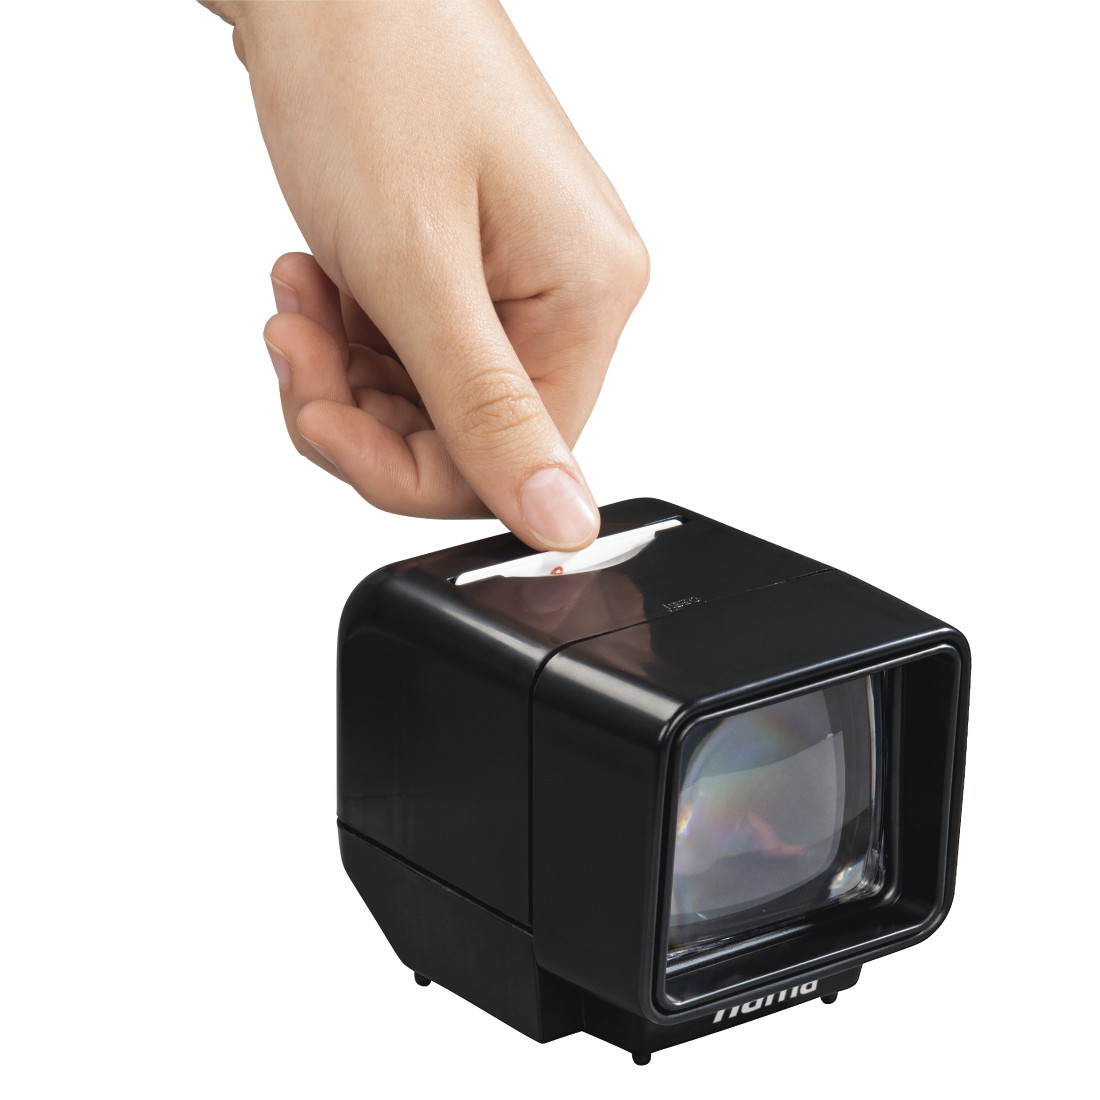 "awx High-Res Appliance - Hama, ""LED"" Slide Viewer, 3 x Magnification"